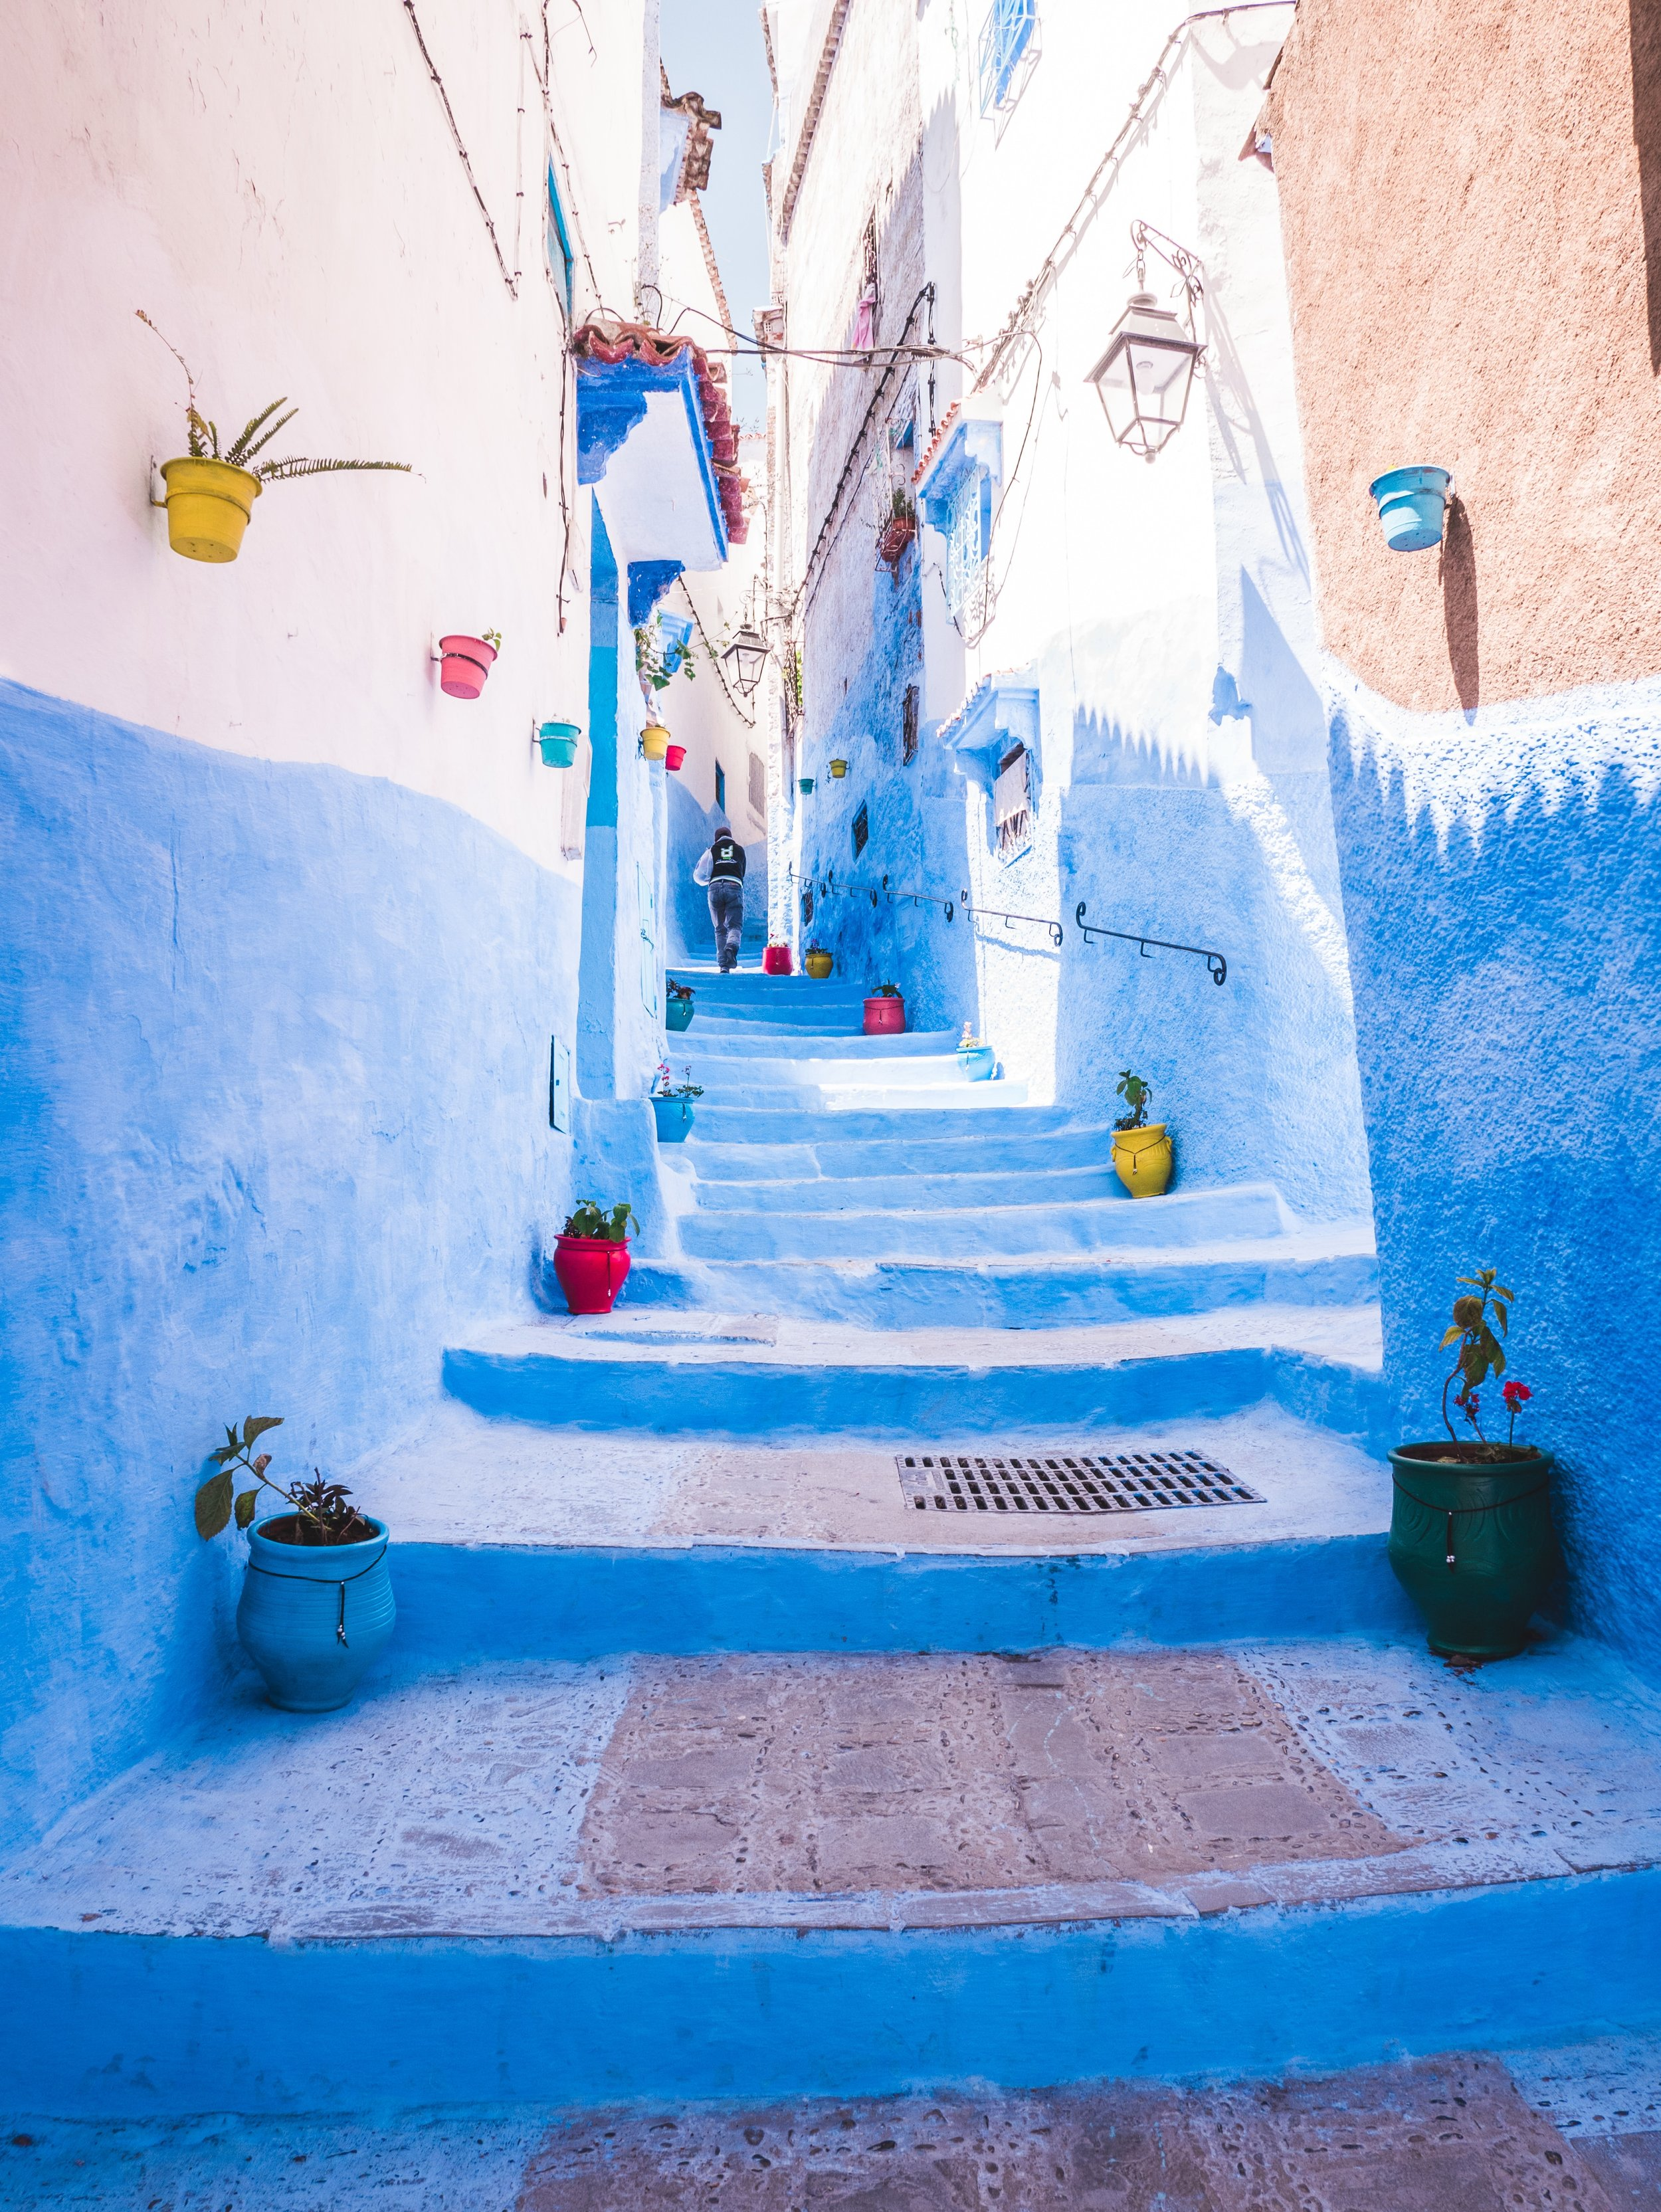 DAY 7: MONDAY MARCH 30, 2020CHEFCHAOUEN - After breakfast, drive to Chefchaouen (drive time: 2 hour 25 minutes).Tour of Chefchaouen with a private guide.Overnight at La Petite Chefchouen.